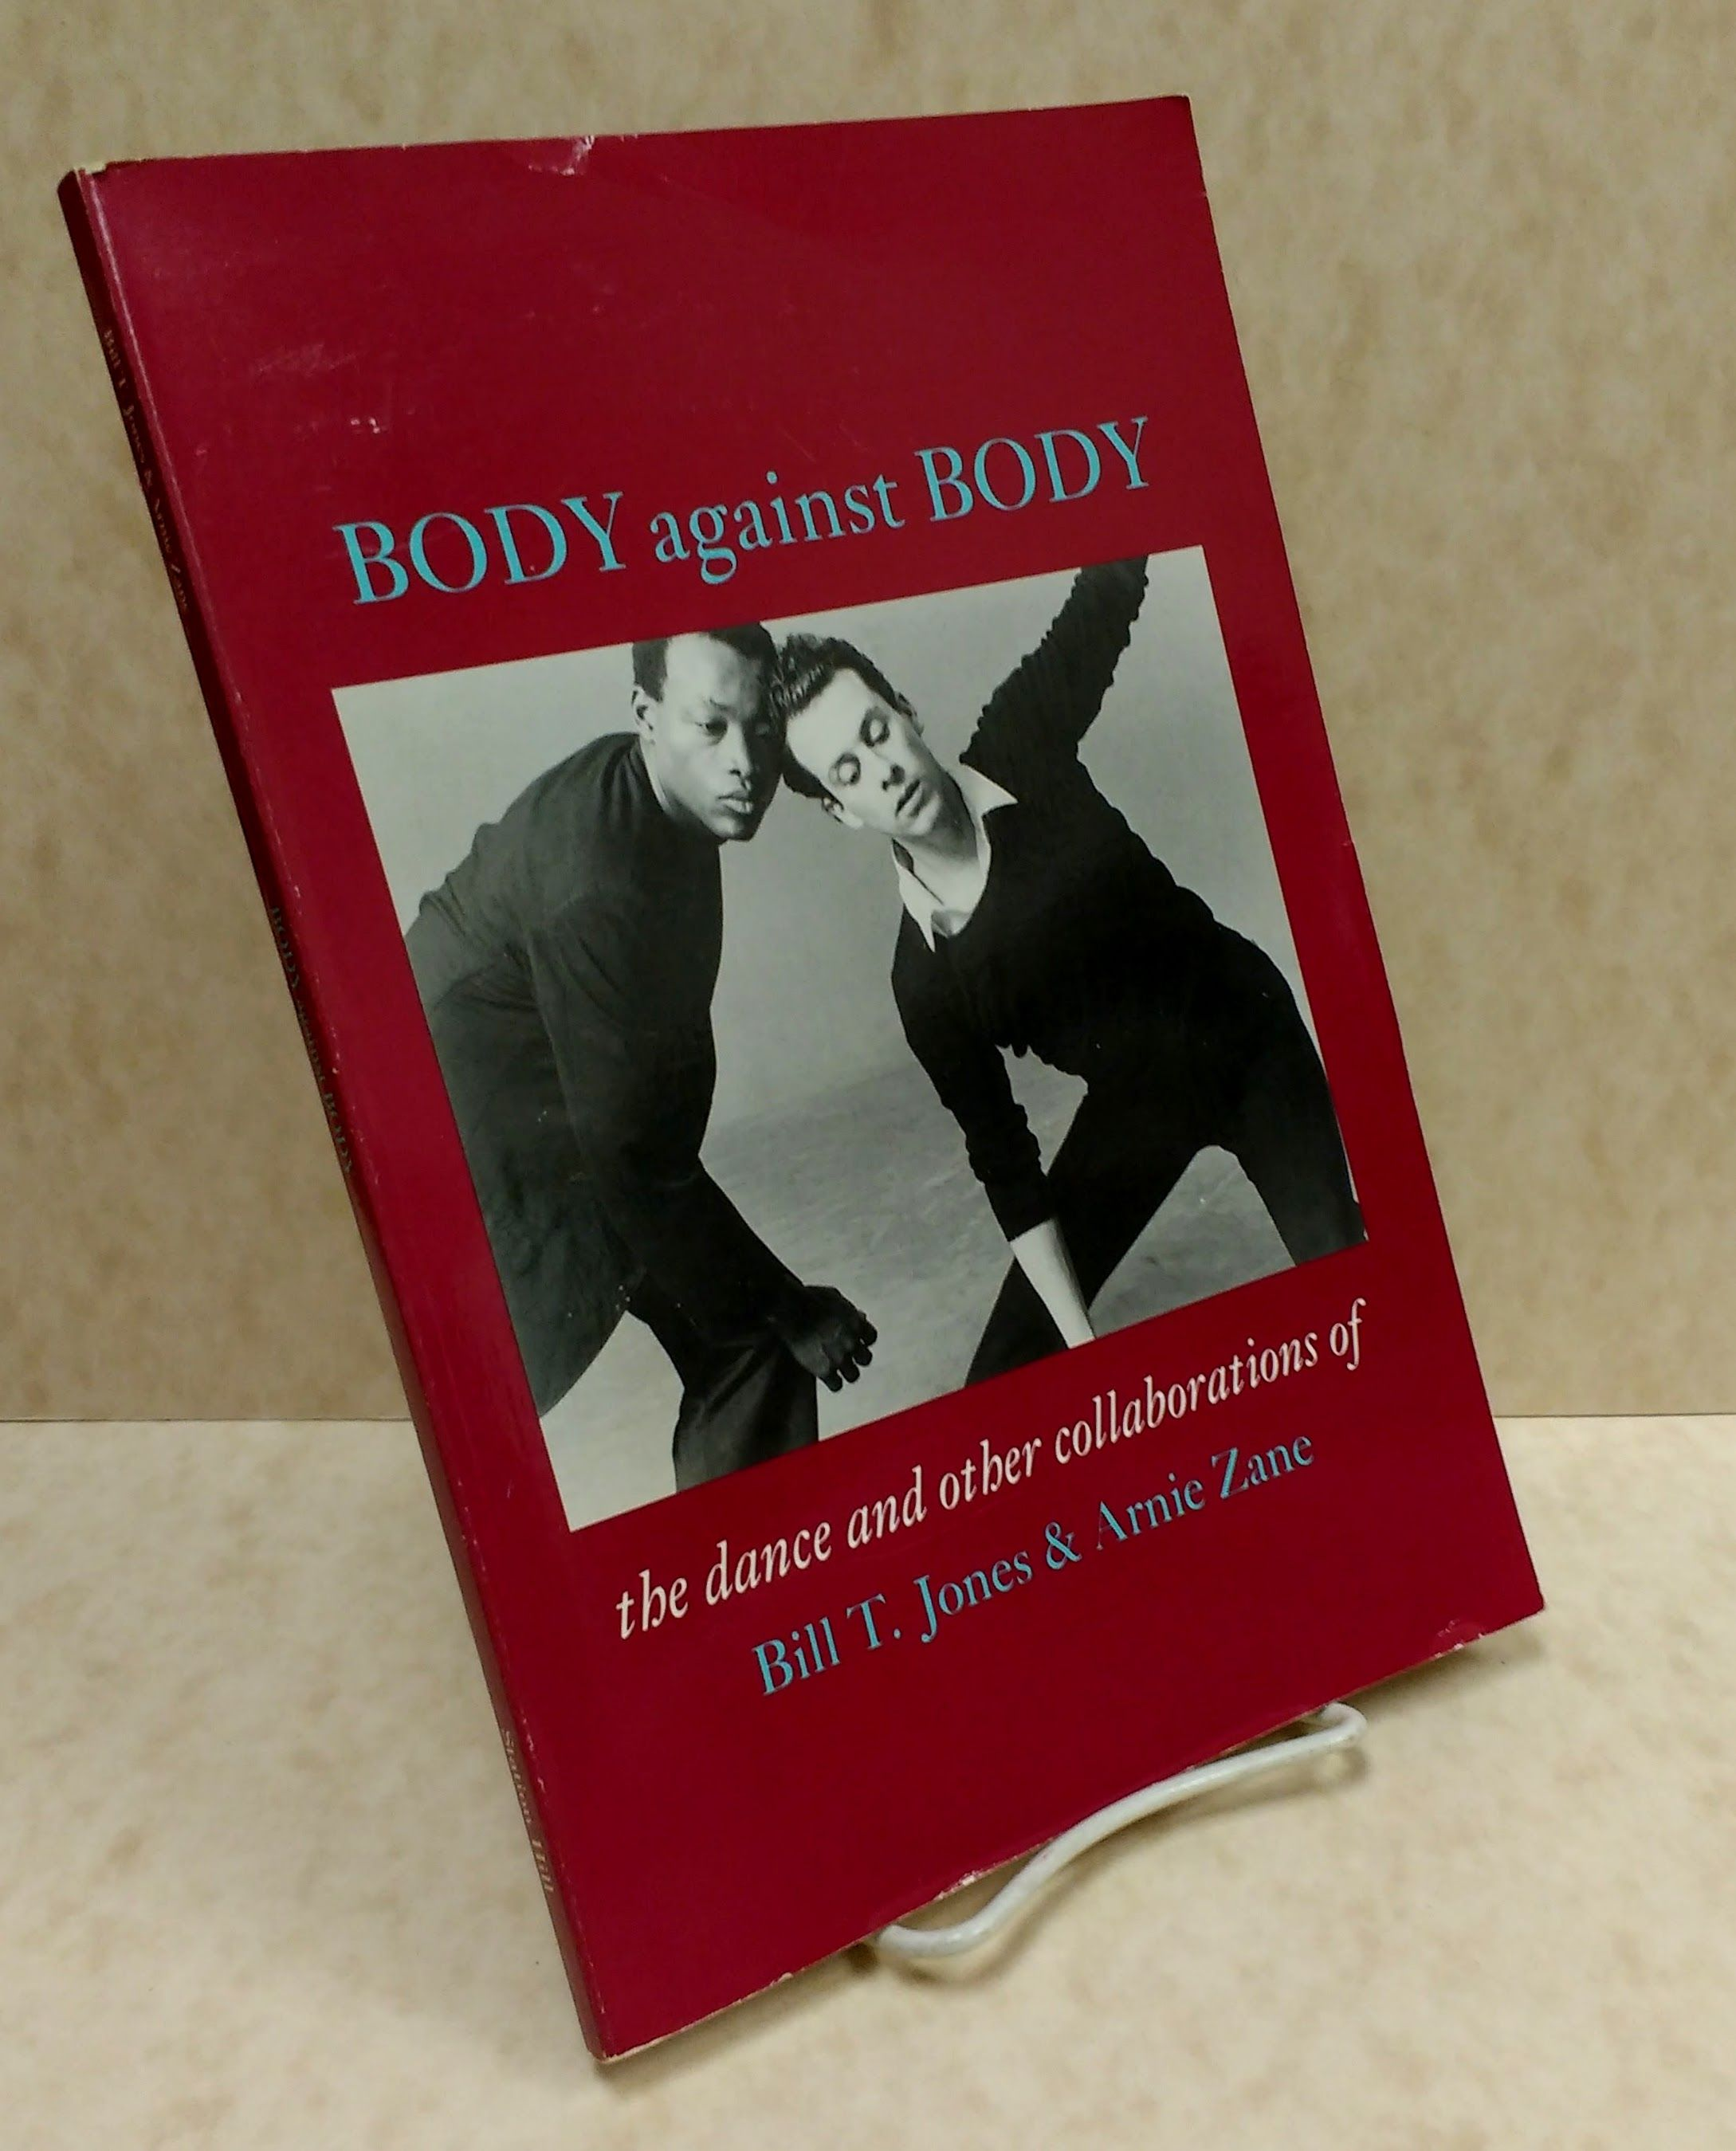 Image for Body Against Body: The Dance and Other Collaborations of Bill T. Jones & Arnie Zane